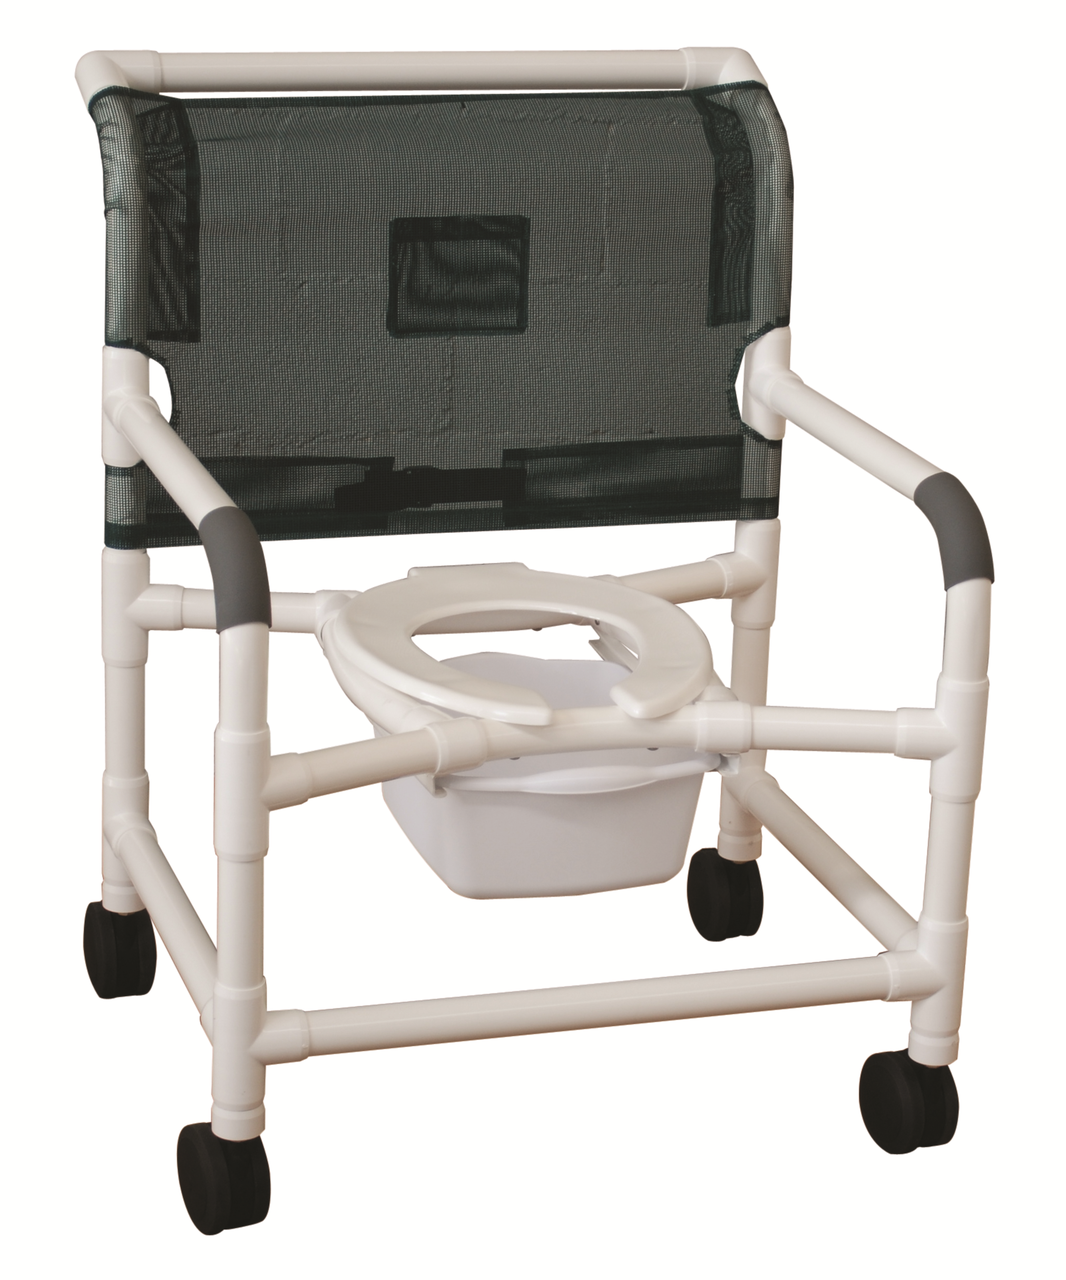 Rolling Shower Chair Super Wide Heavy Duty - CareProdx